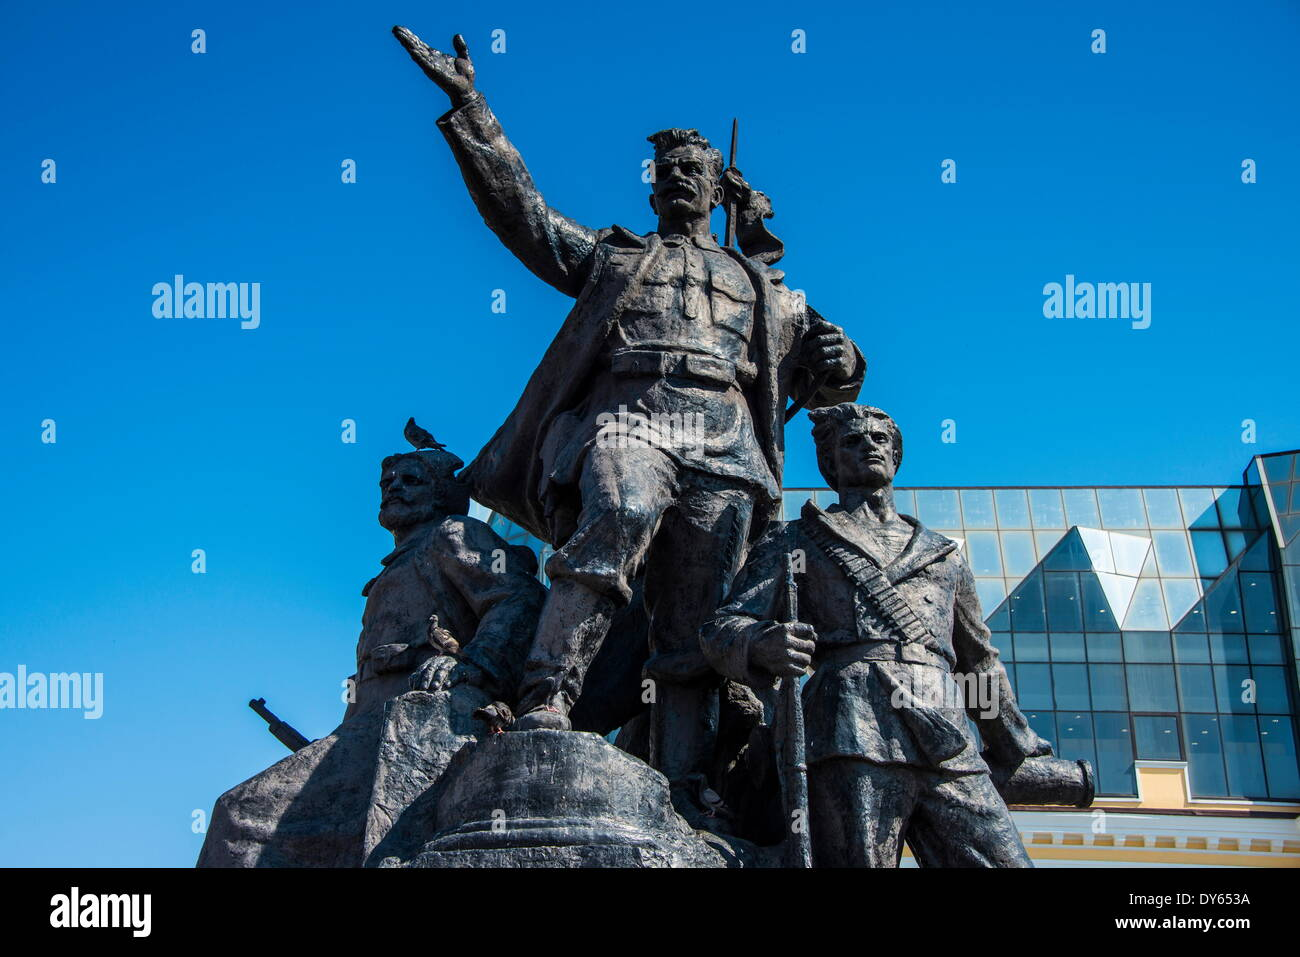 Monument to the Fighters for Soviet Power, Vladivostok, Russia, Eurasia - Stock Image